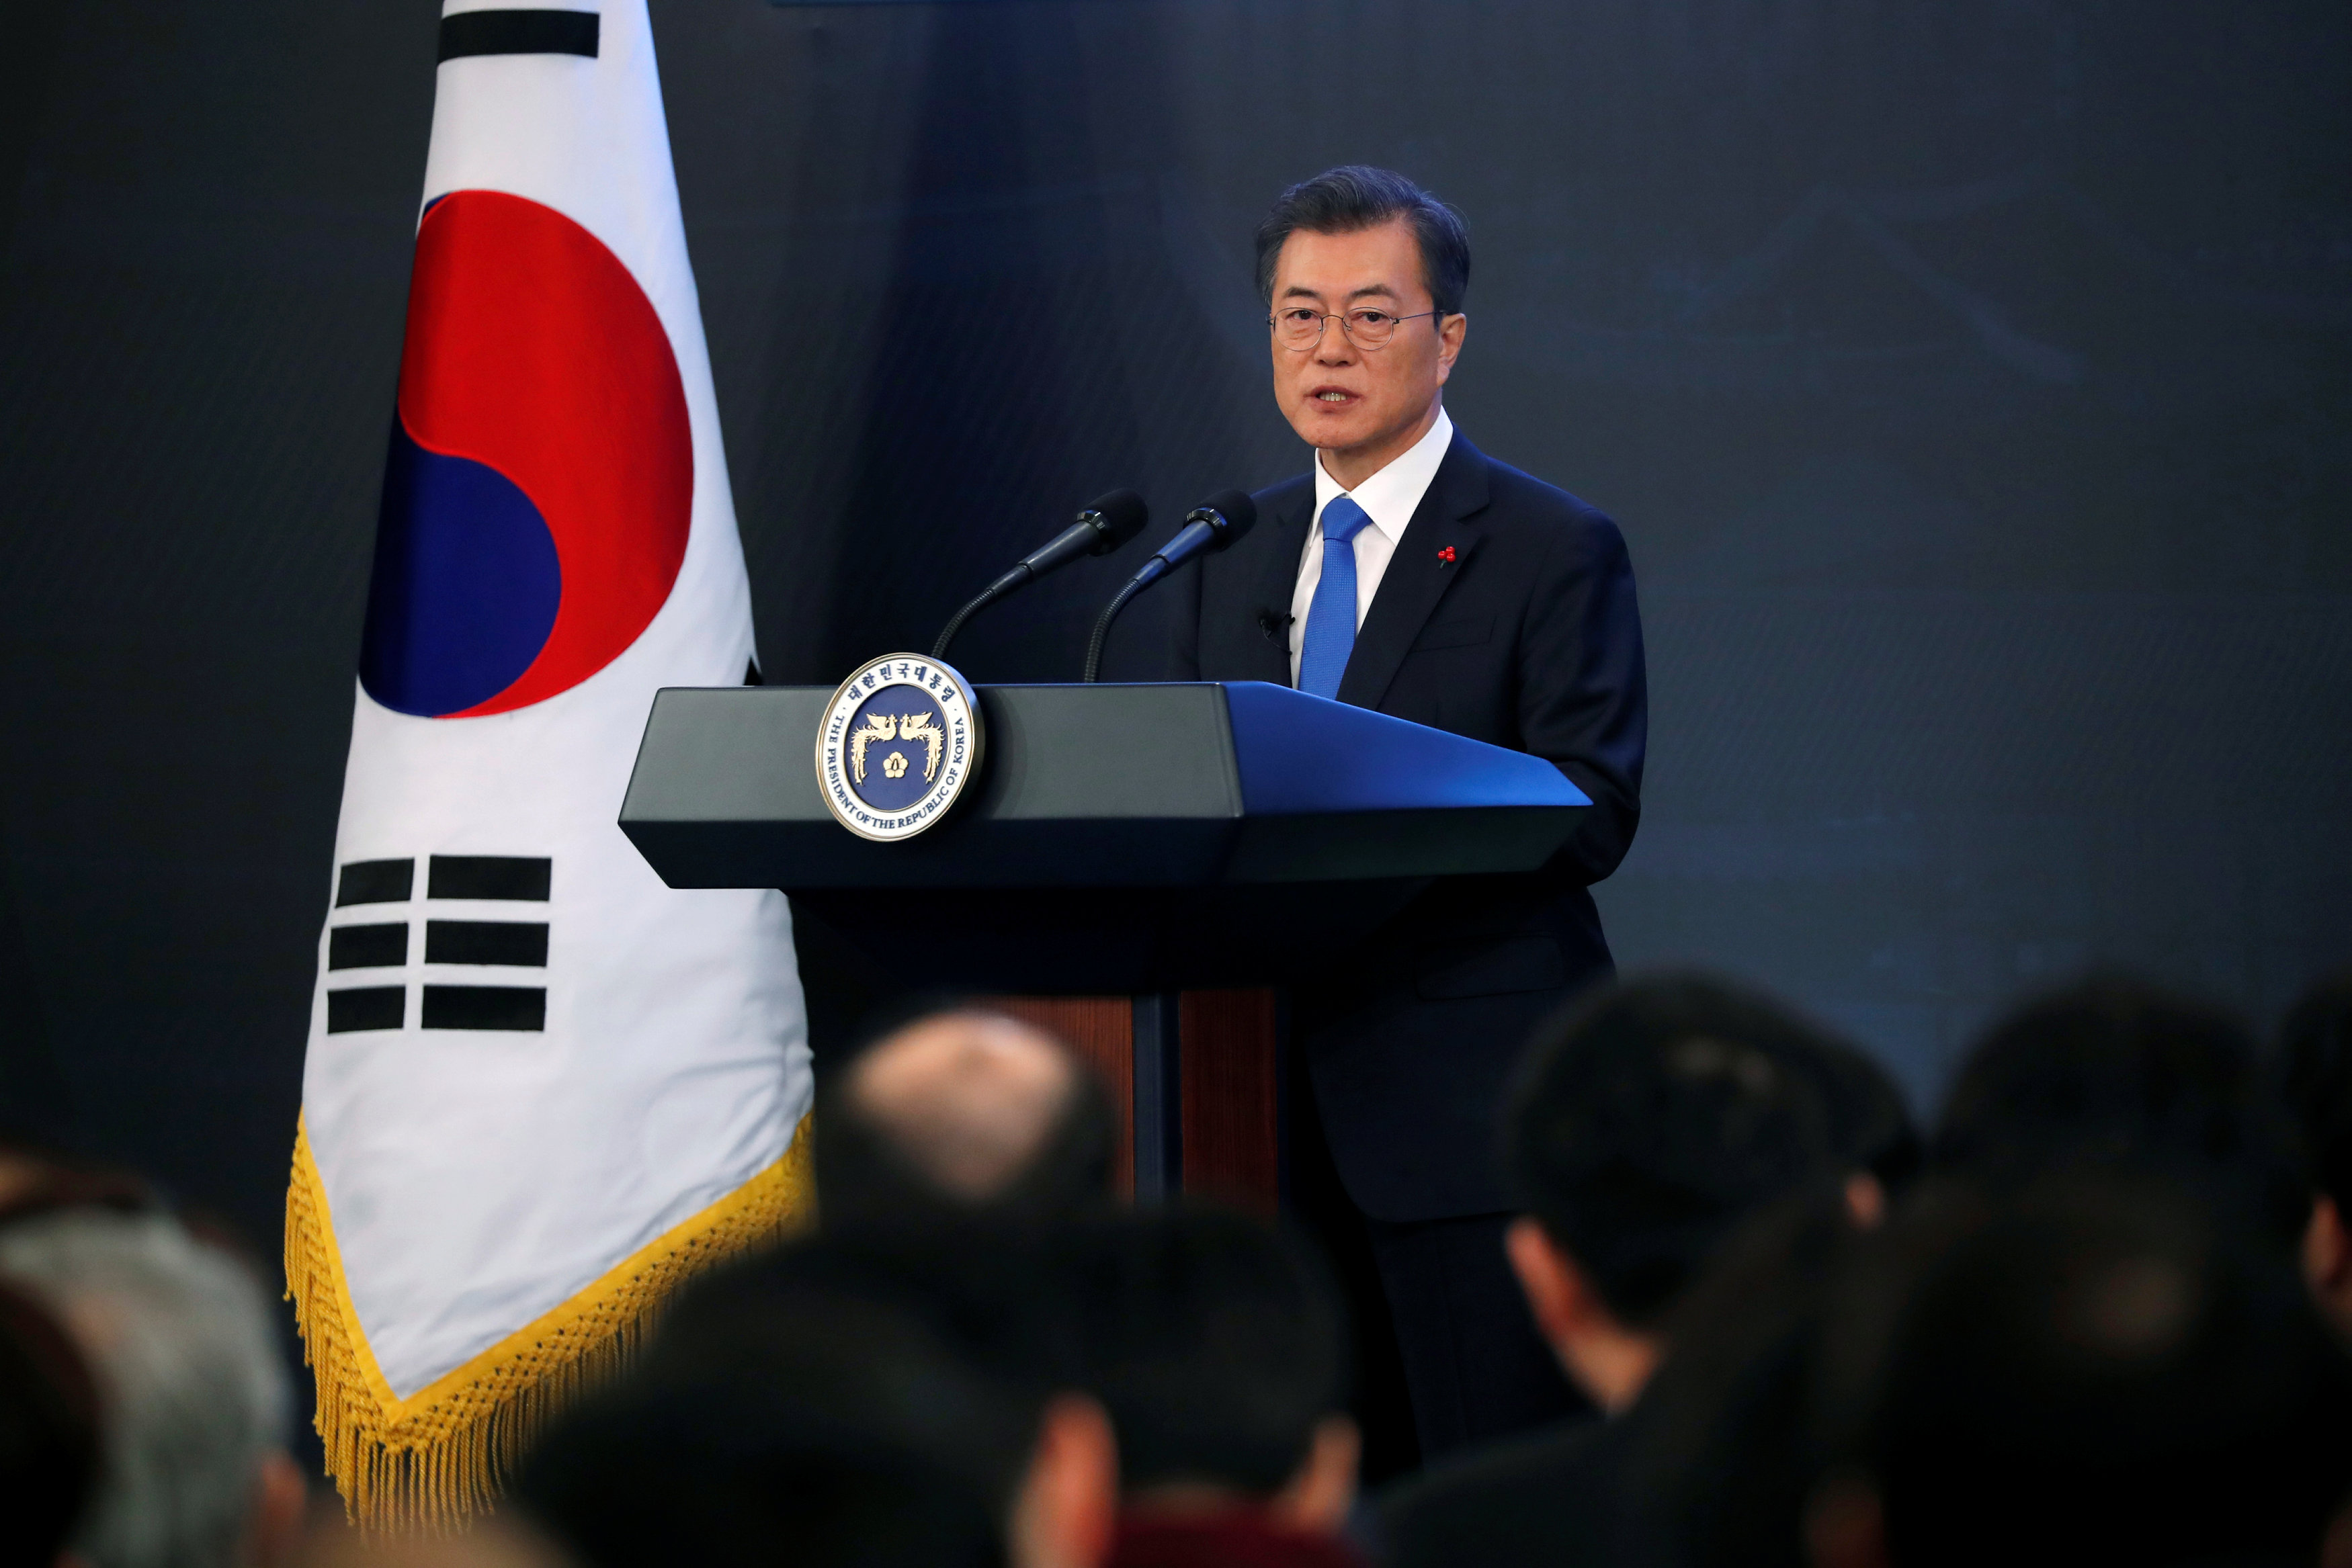 South Korean President Moon Jae-in delivers a speech during his New Year news conference at the Presidential Blue House in Seoul, South Korea, January 10,